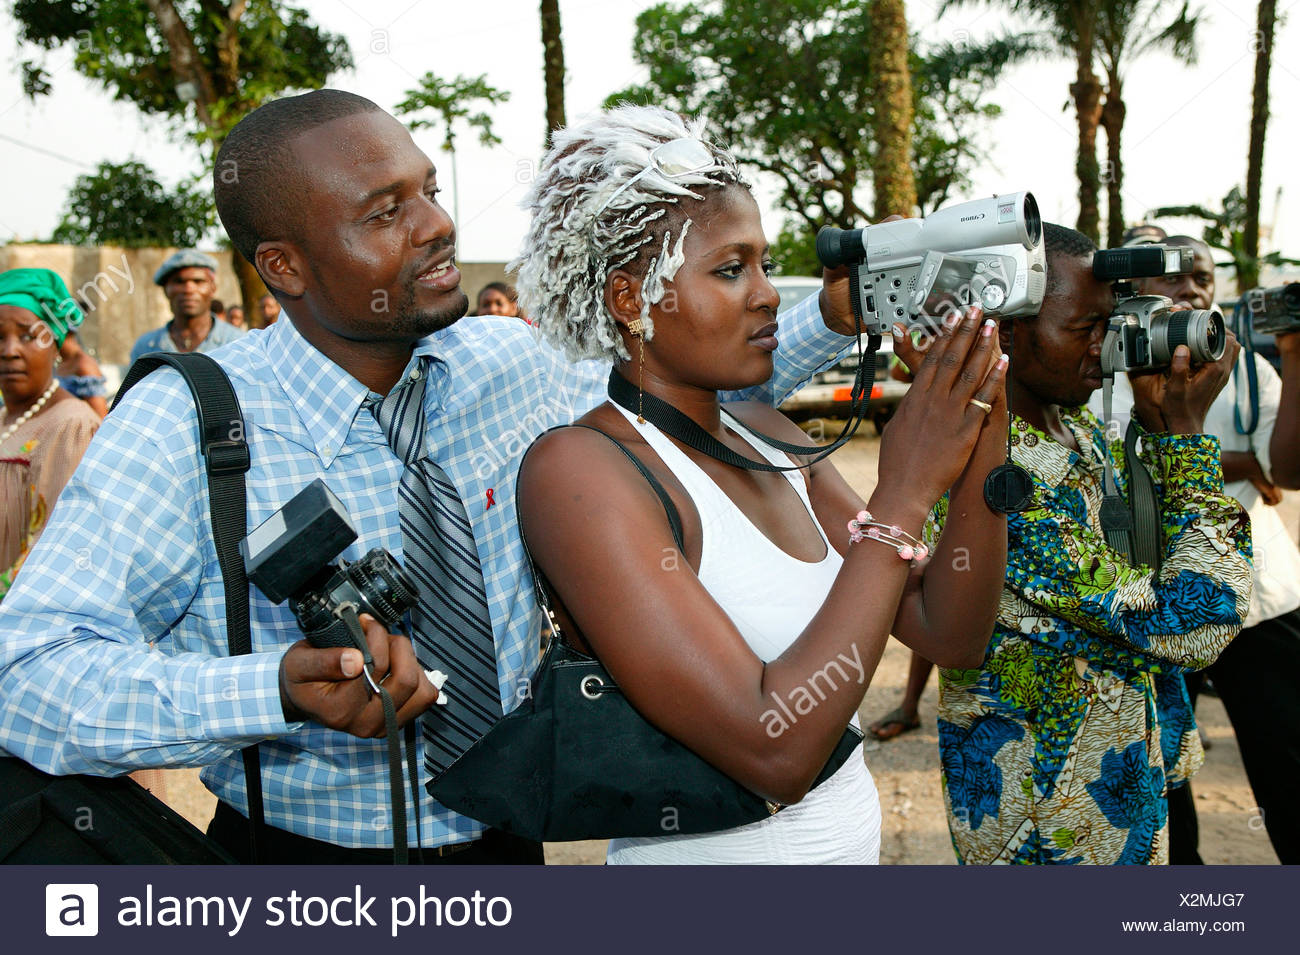 Photographer showing woman how to operate a video camera, Douala, Cameroon, Africa - Stock Image